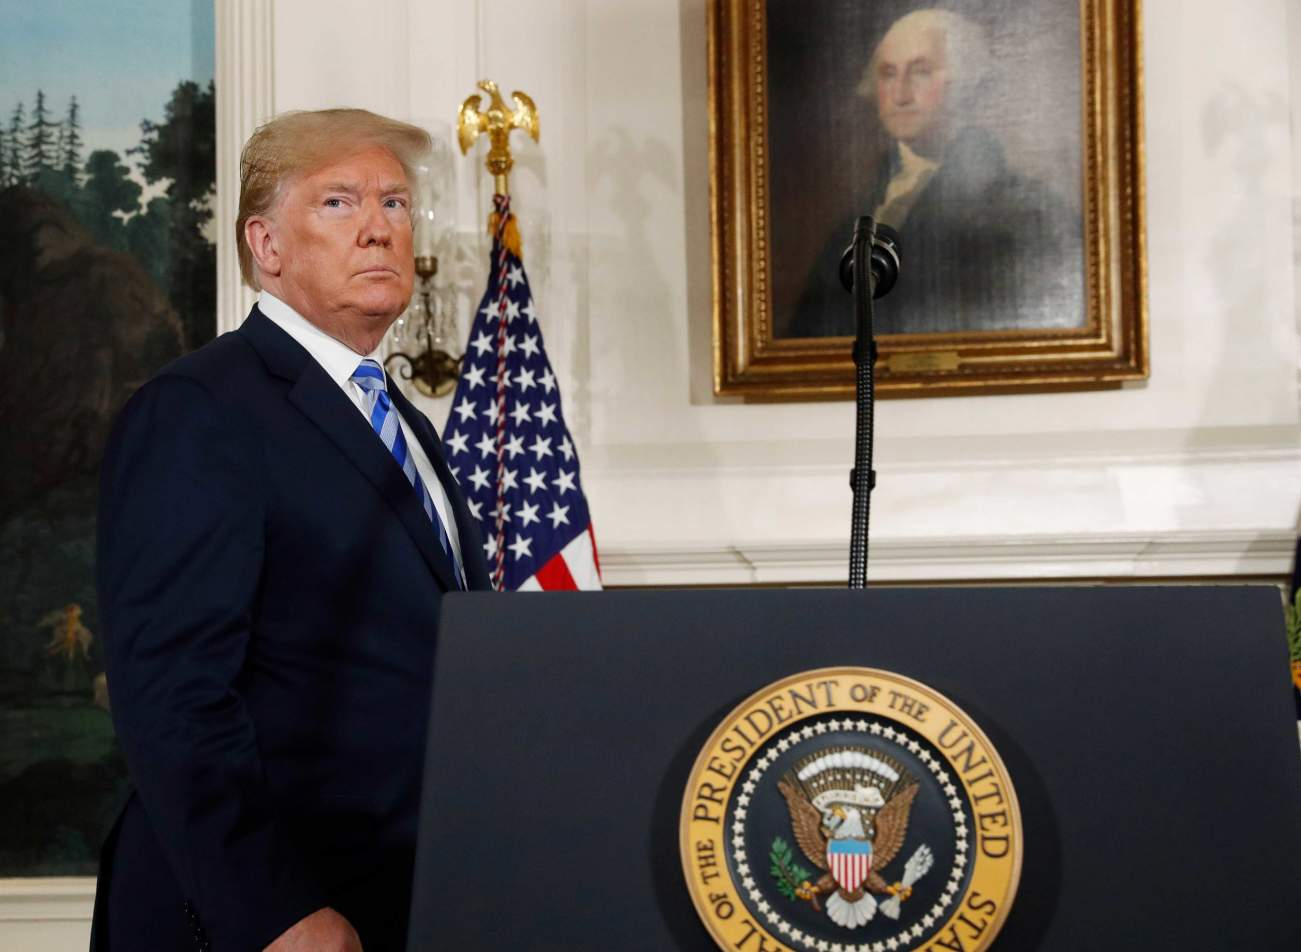 U.S. President Donald Trump arrives to announce his intention to withdraw from the JCPOA Iran nuclear agreement during a statement in the Diplomatic Room at the White House in Washington, U.S., May 8, 2018. REUTERS/Jonathan Ernst